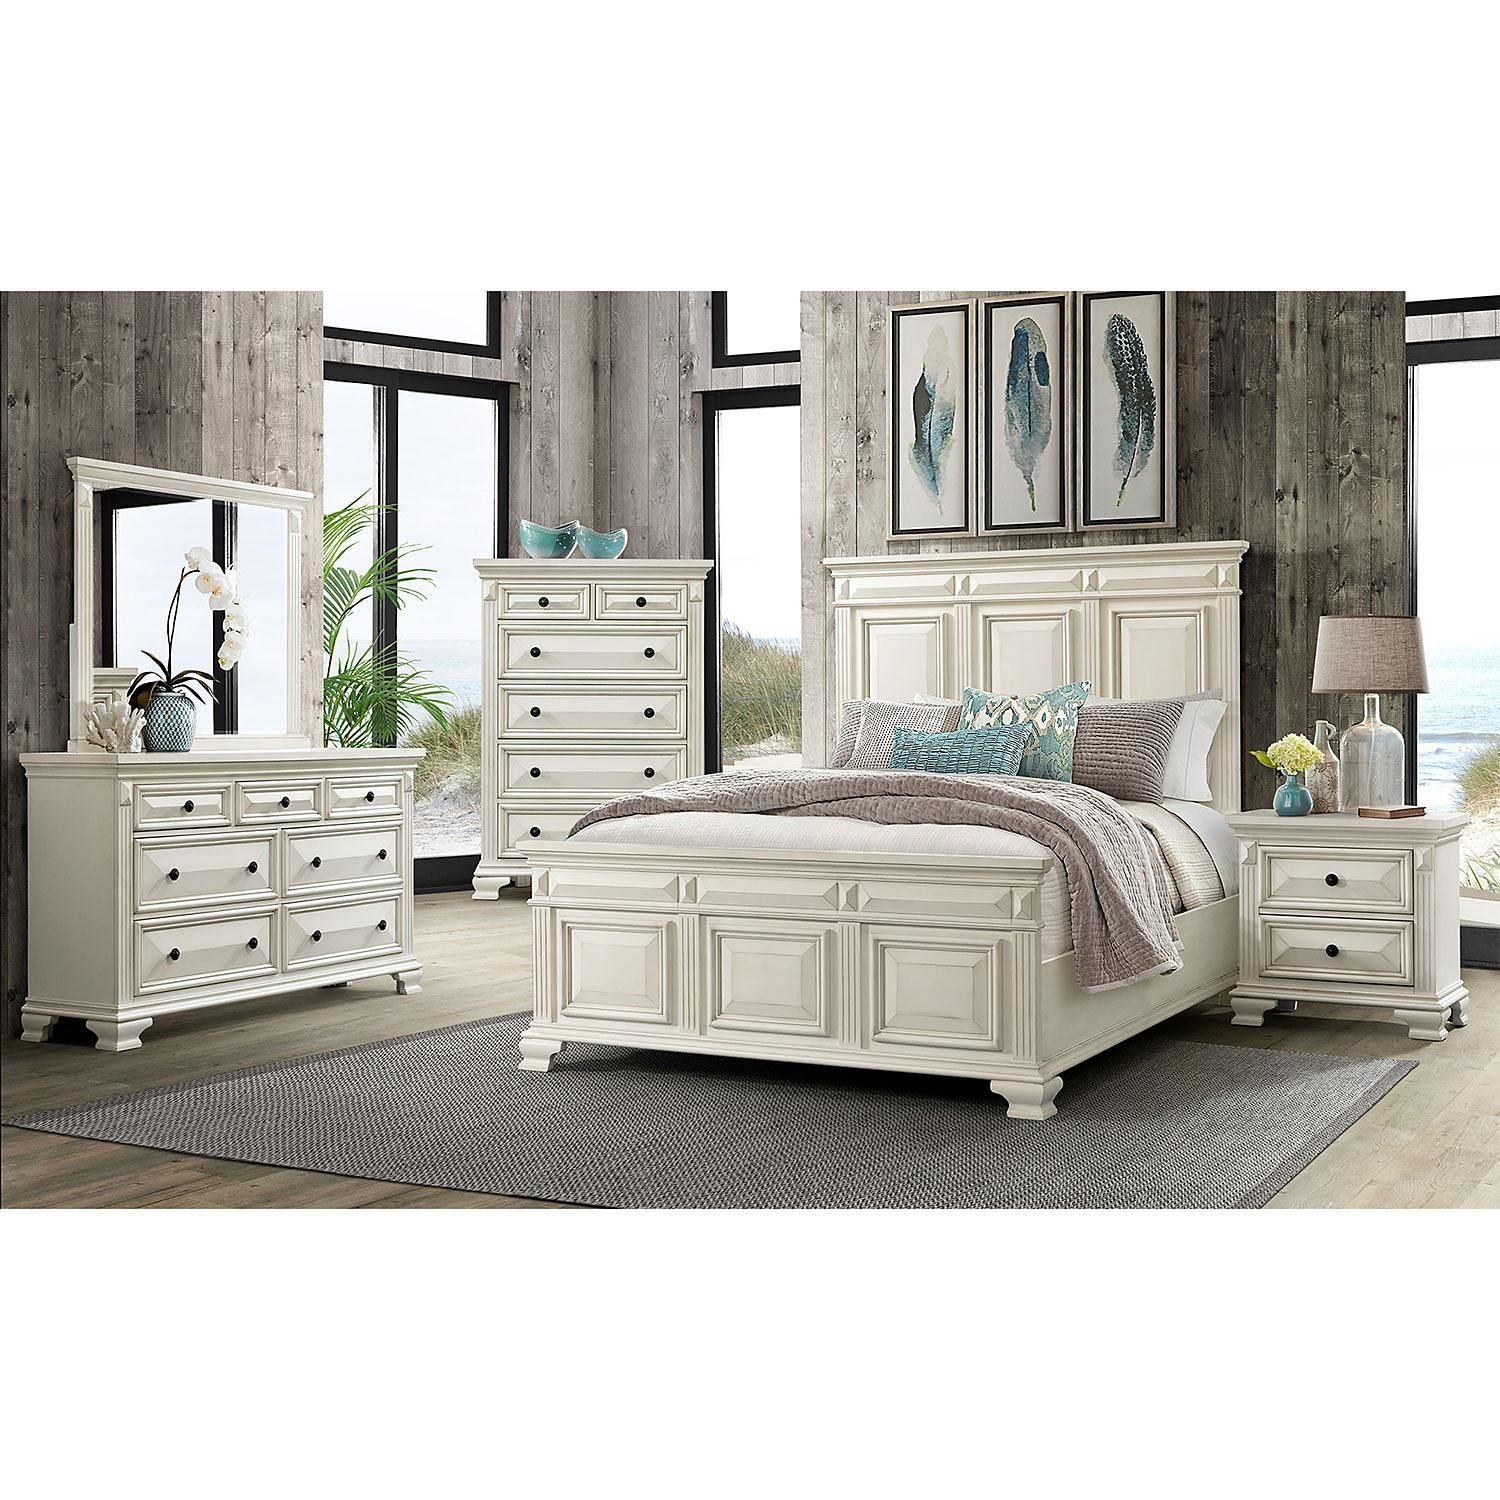 Black Mirror Bedroom Set Best Of $1599 00 society Den Trent Panel 6 Piece King Bedroom Set